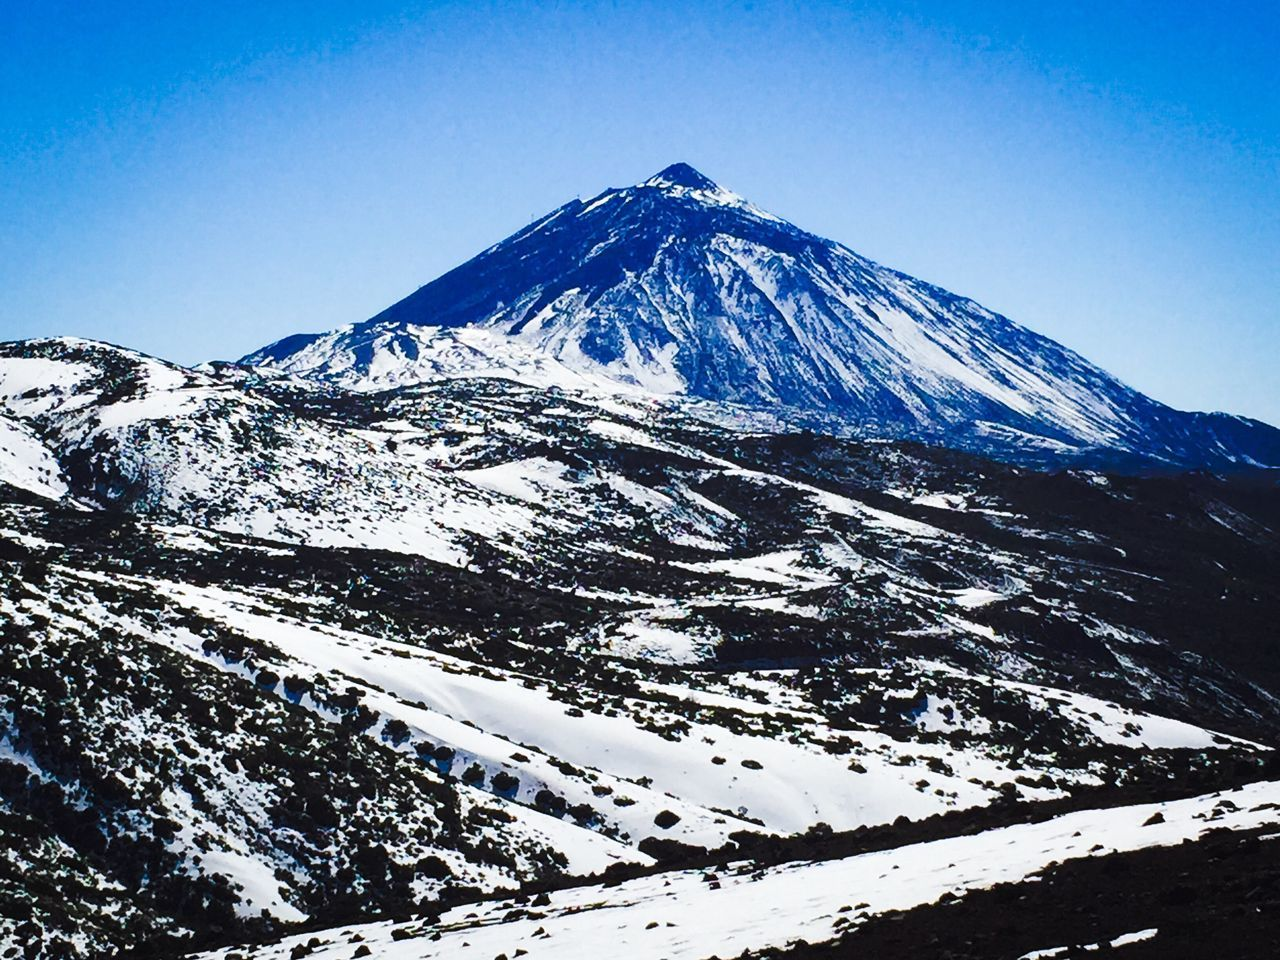 Teide Snow Blue Mountain Snowcapped Mountain Scenics Winter Cold Temperature Nature Tranquility Non-urban Scene Outdoors Idyllic Landscape Beauty In Nature Day Tranquil Scene No People Sky